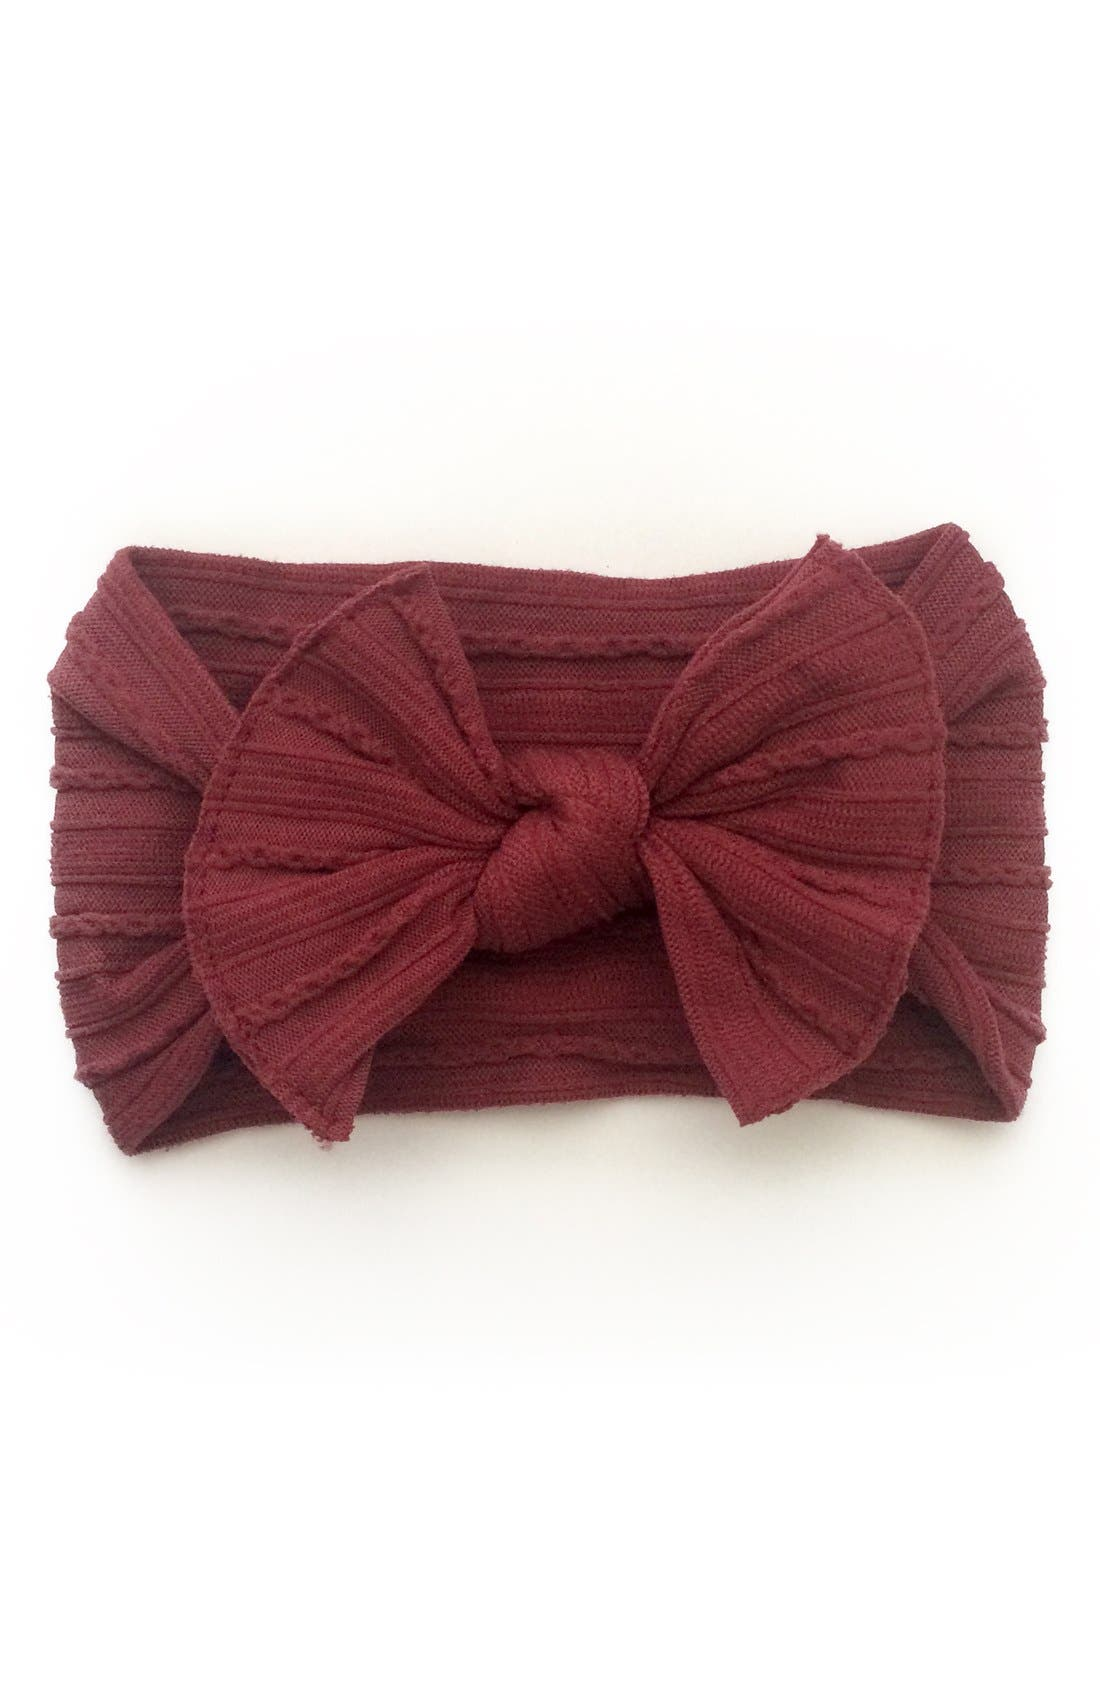 Baby Bling Cable Knit Bow Headband (Baby Girls)